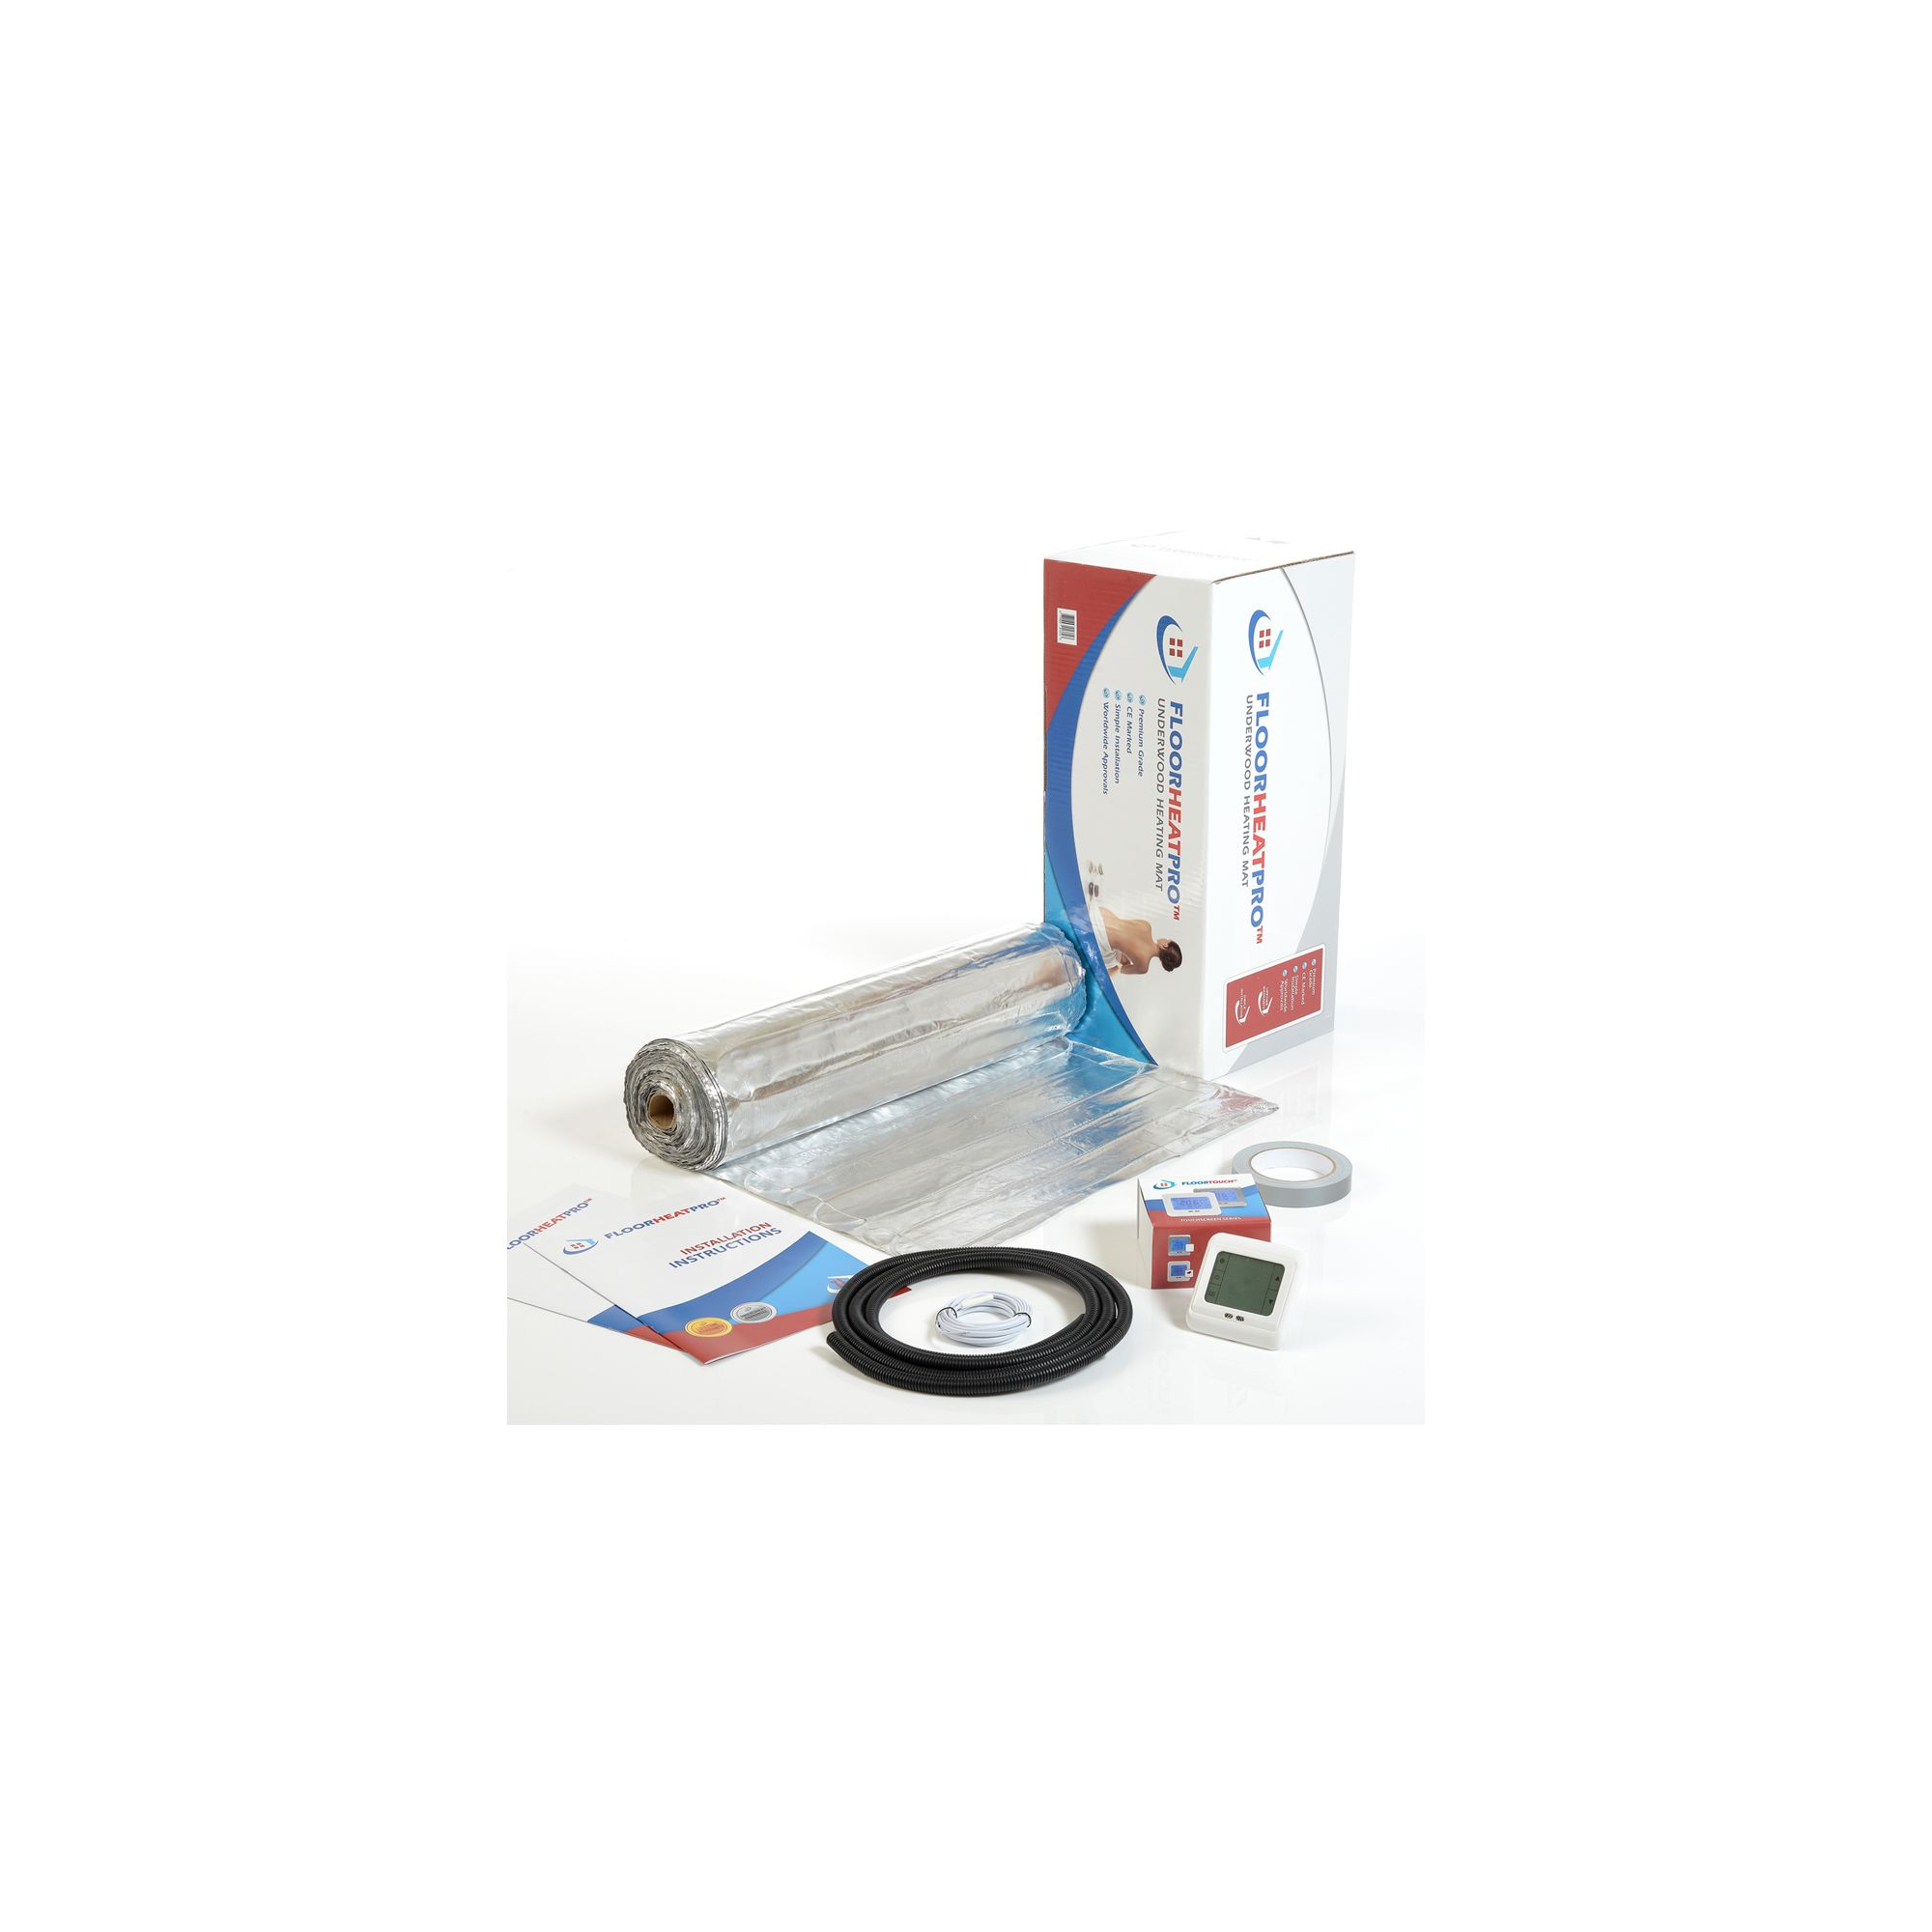 9.0 m2 - Underfloor Electric Heating Kit - Laminate at Tesco Direct